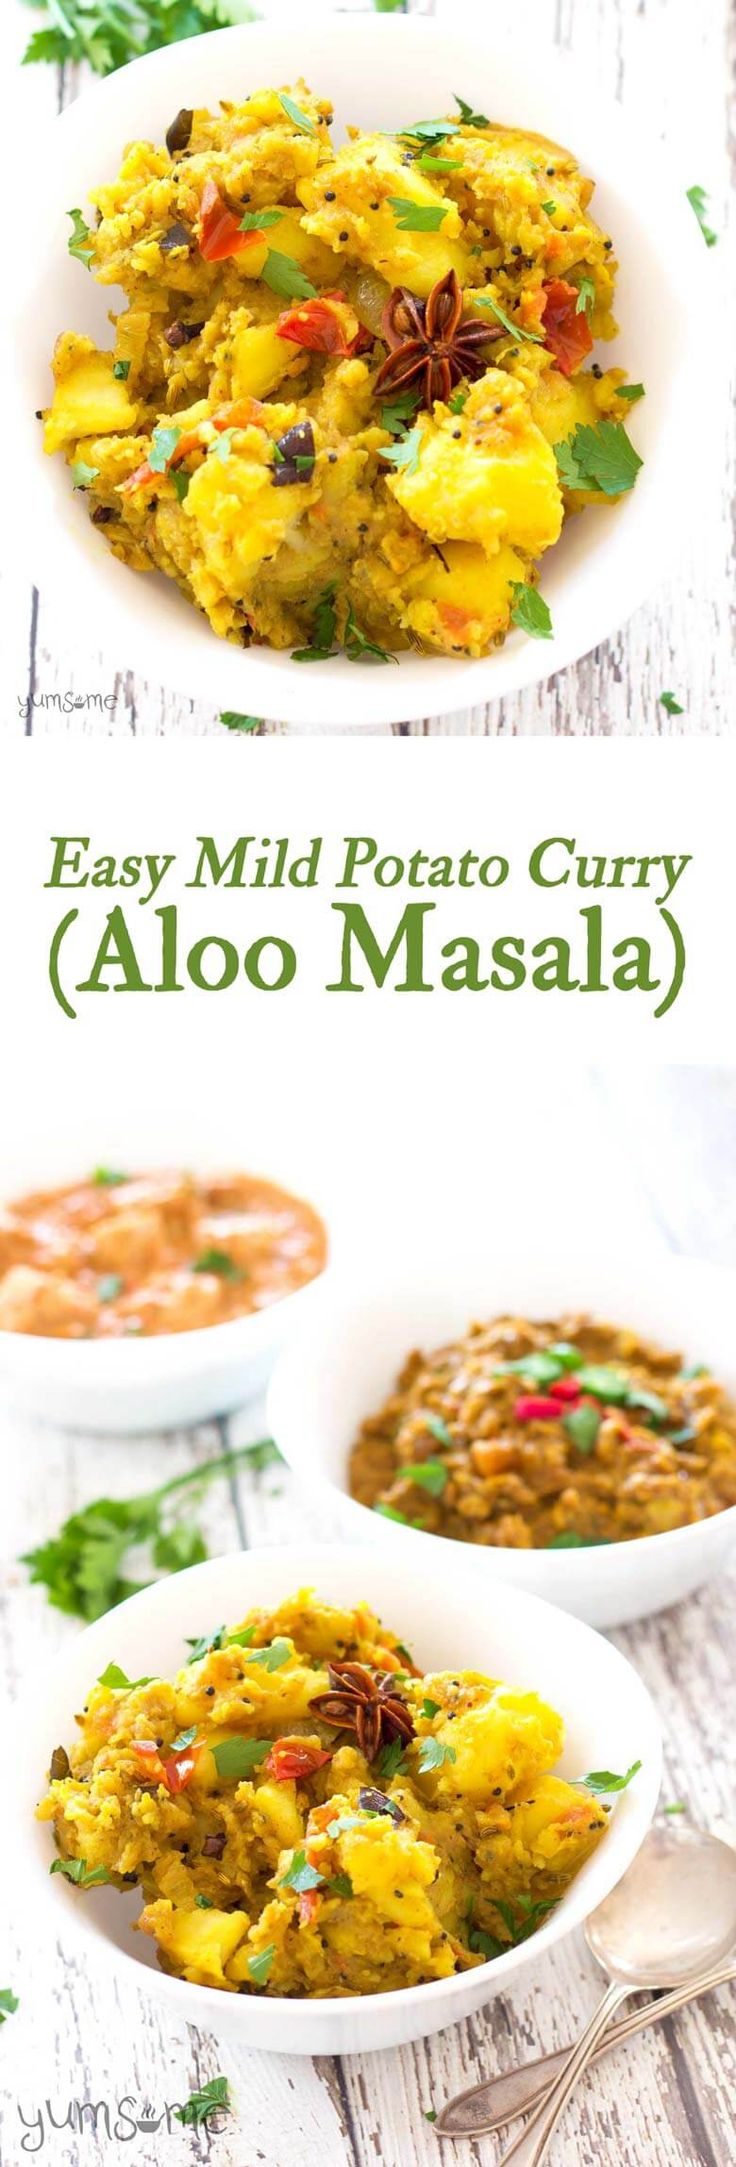 Aloo masala is a deliciously comforting, mildly-spiced mixture of fried mashed potatoes, onion, and tomato. It's a fantastic meal at any time of the day but it's especially great for breakfast. | yumsome.com